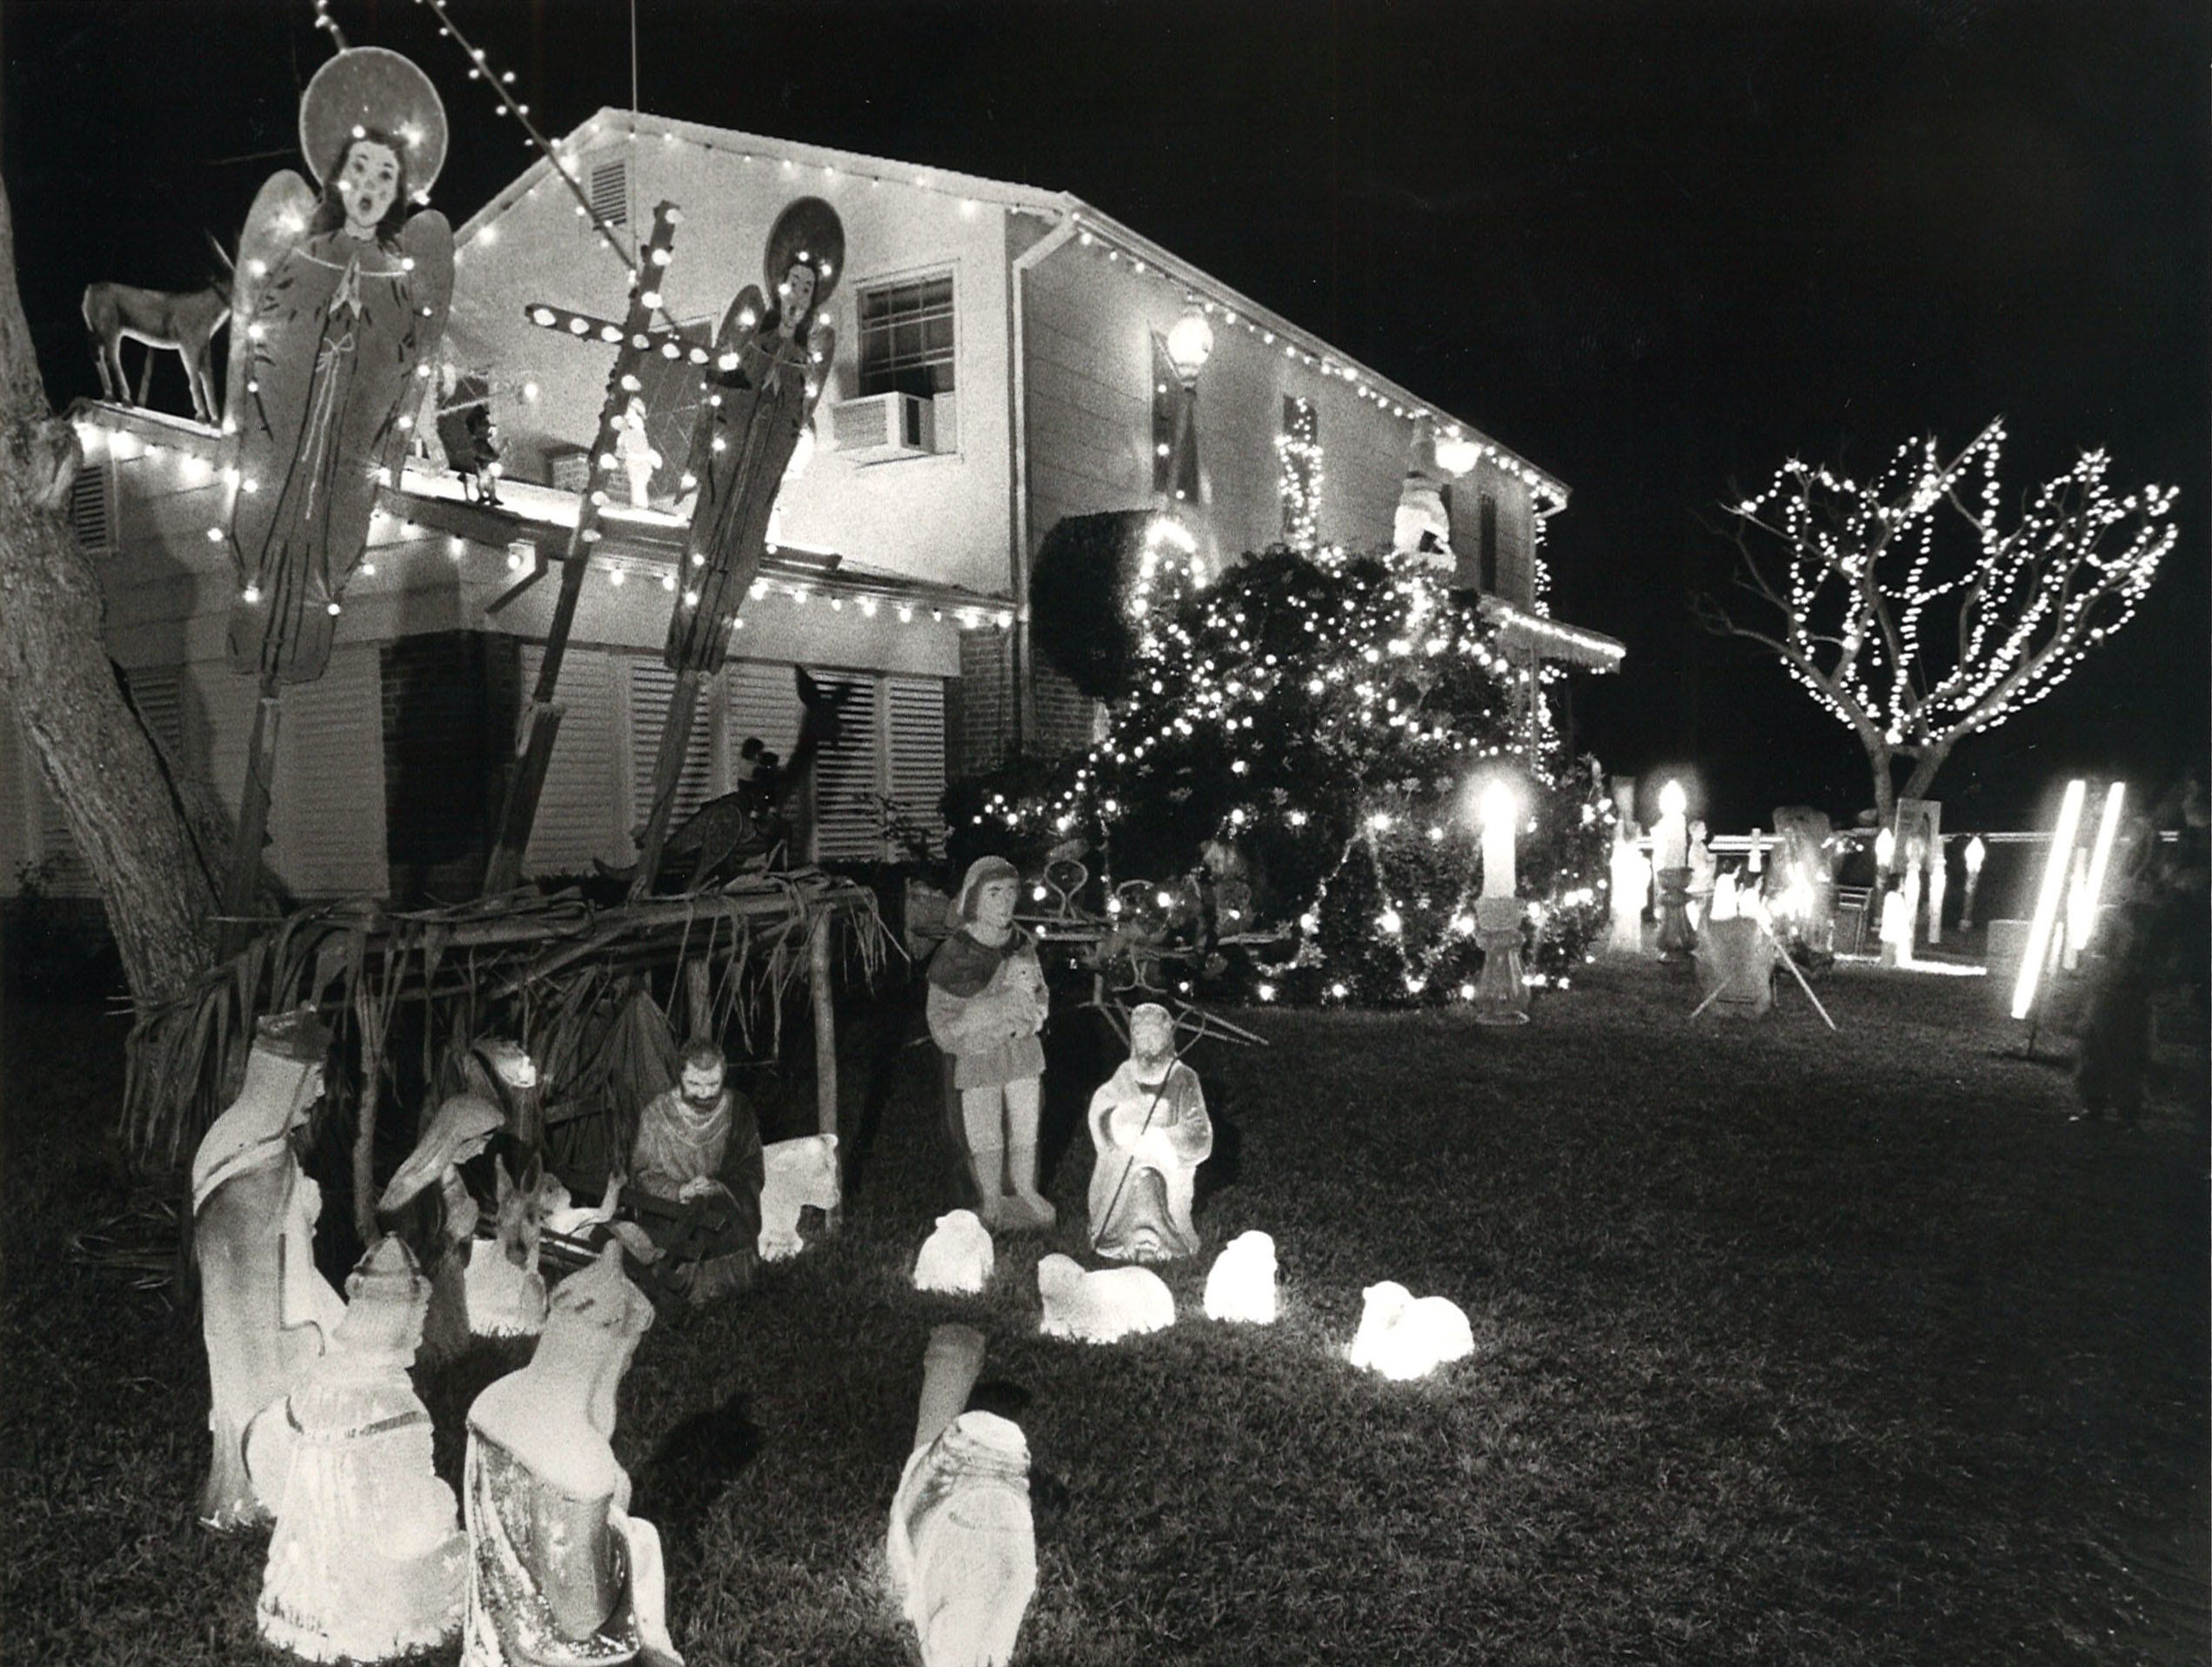 Billy Aldridge's house on the corner of Delaine and Doddridge decorated for Christmas in 1981.